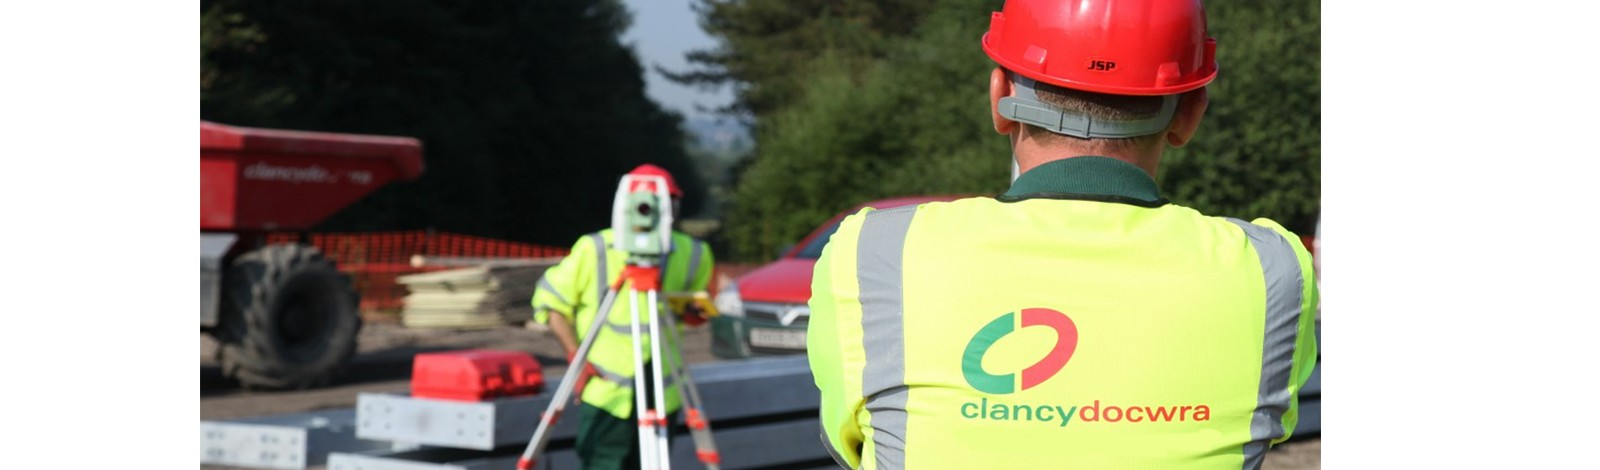 Clancy Docwra case studies by sector and project - Clancy Docwra